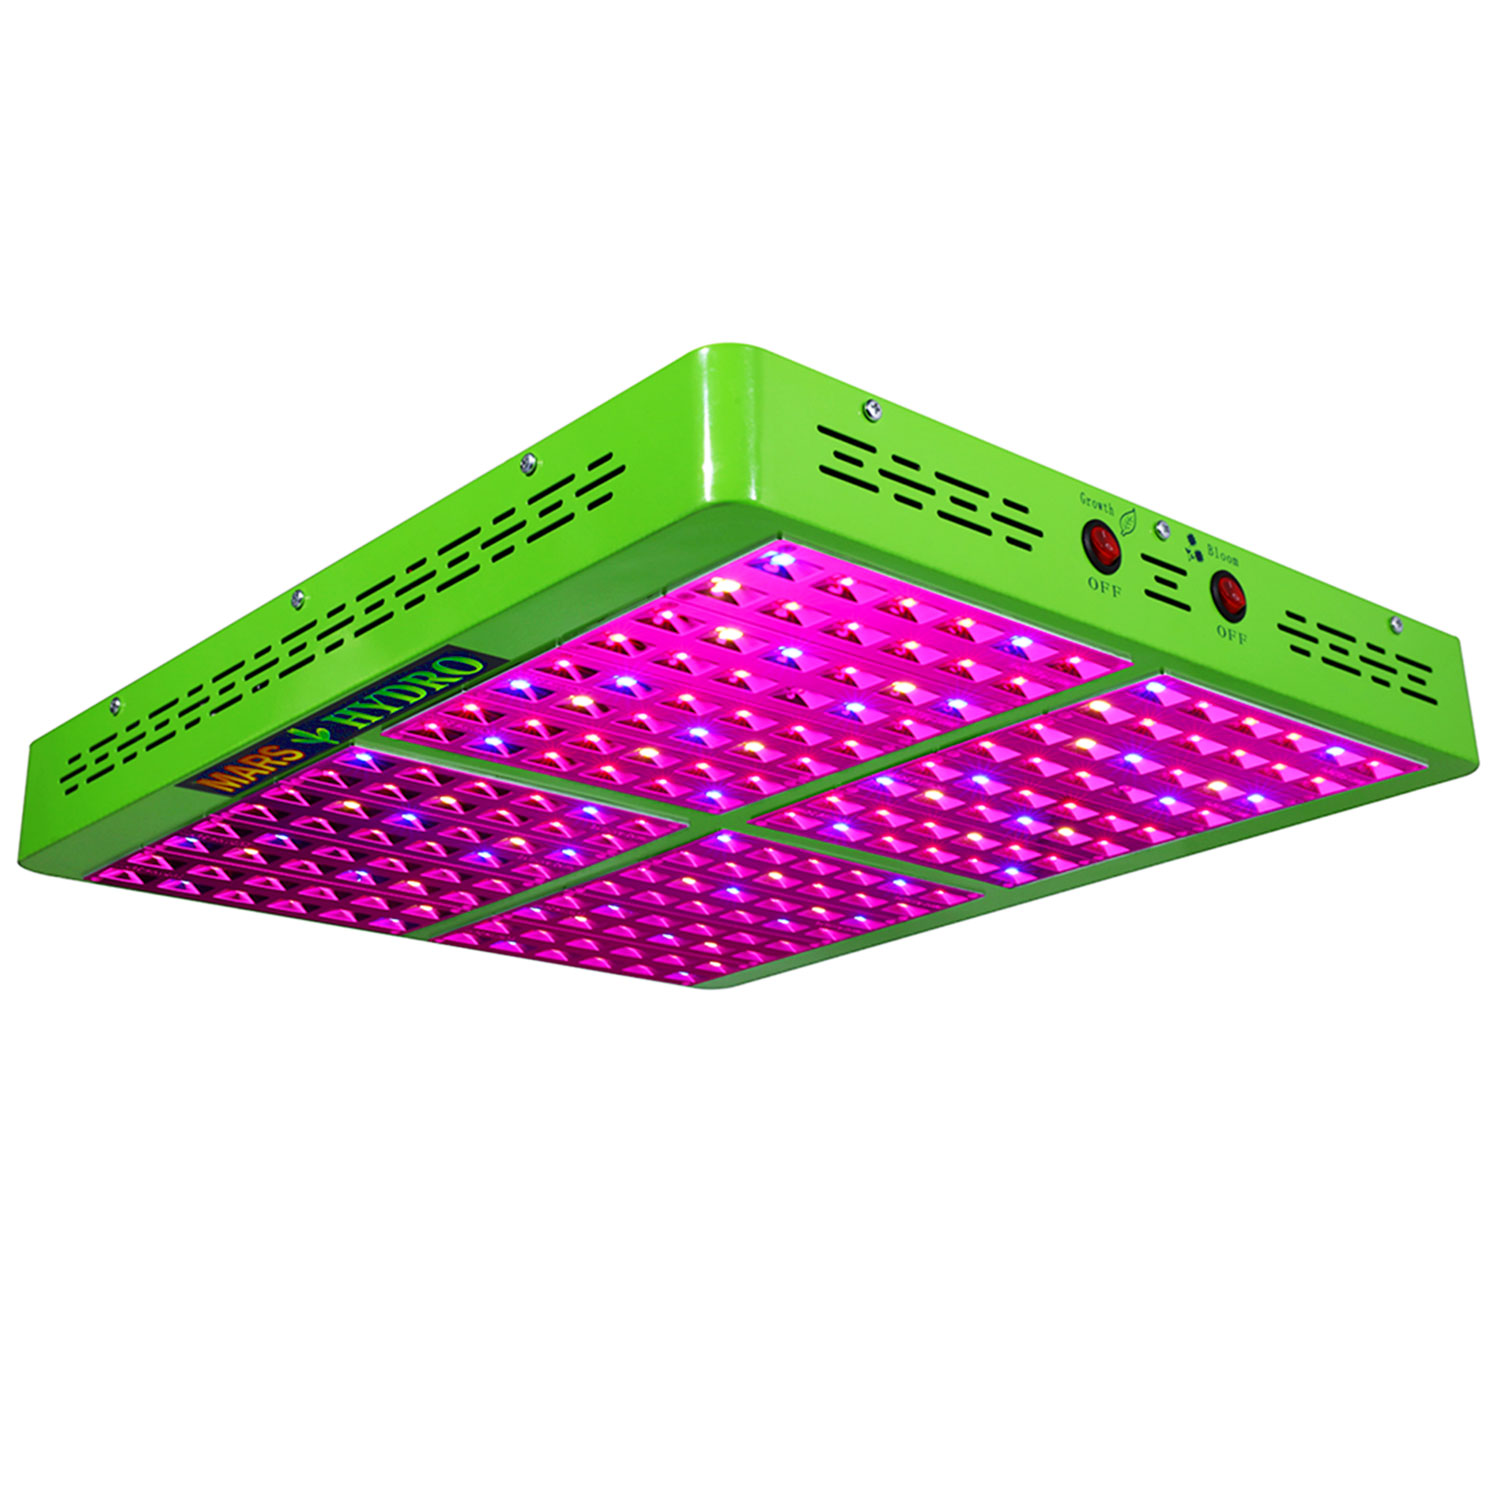 LED Grow Light Kits Mars Hydro Reflector 192 Best for Veg Flower Seedling Germination Indoor Hydroponic Full Spectrum Lamp Panel Most Efficient Garden Greenhouse Plant Growth